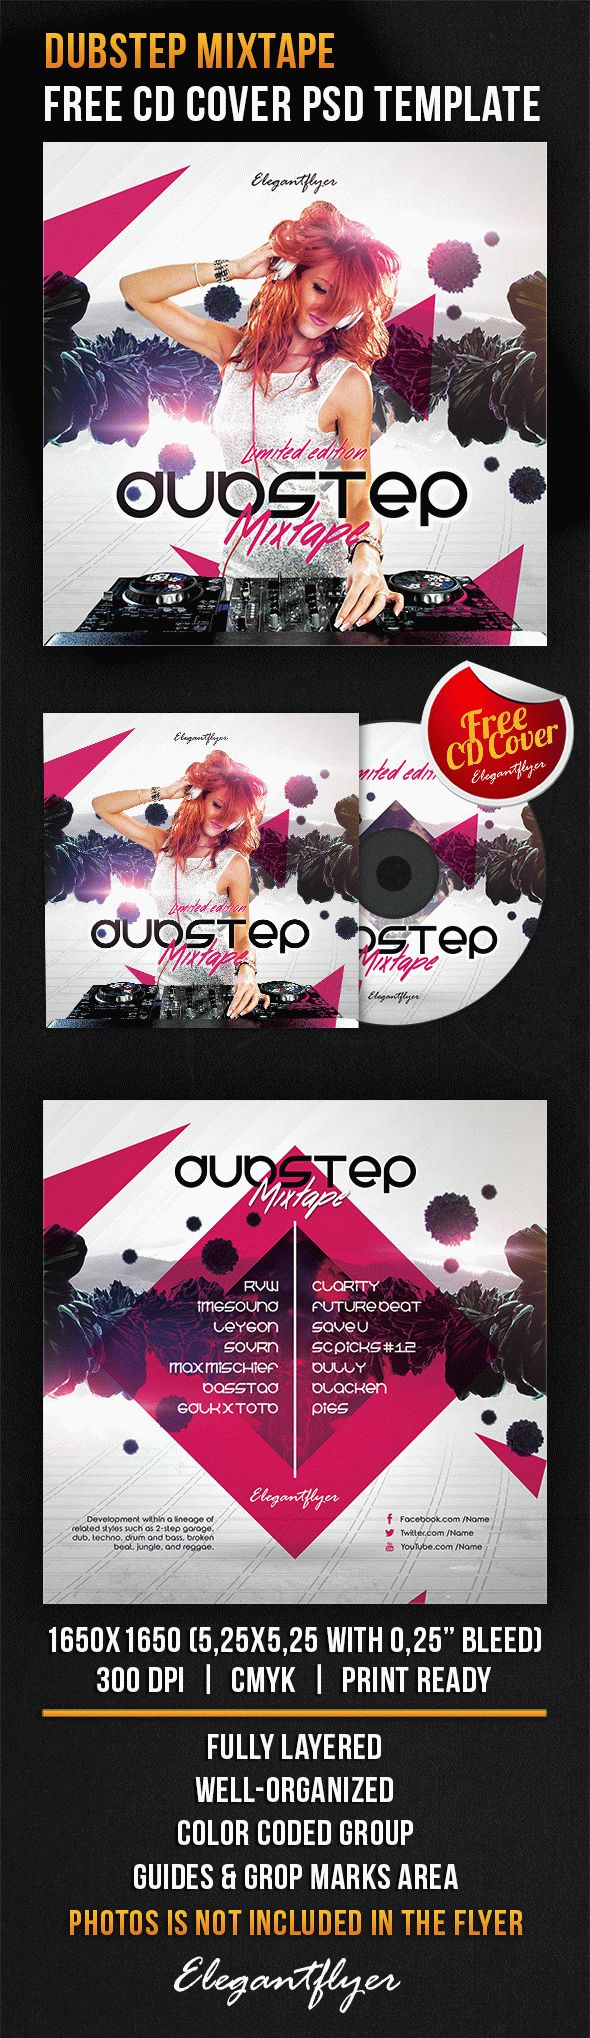 Dubstep Mixtape – Free CD Cover PSD Template